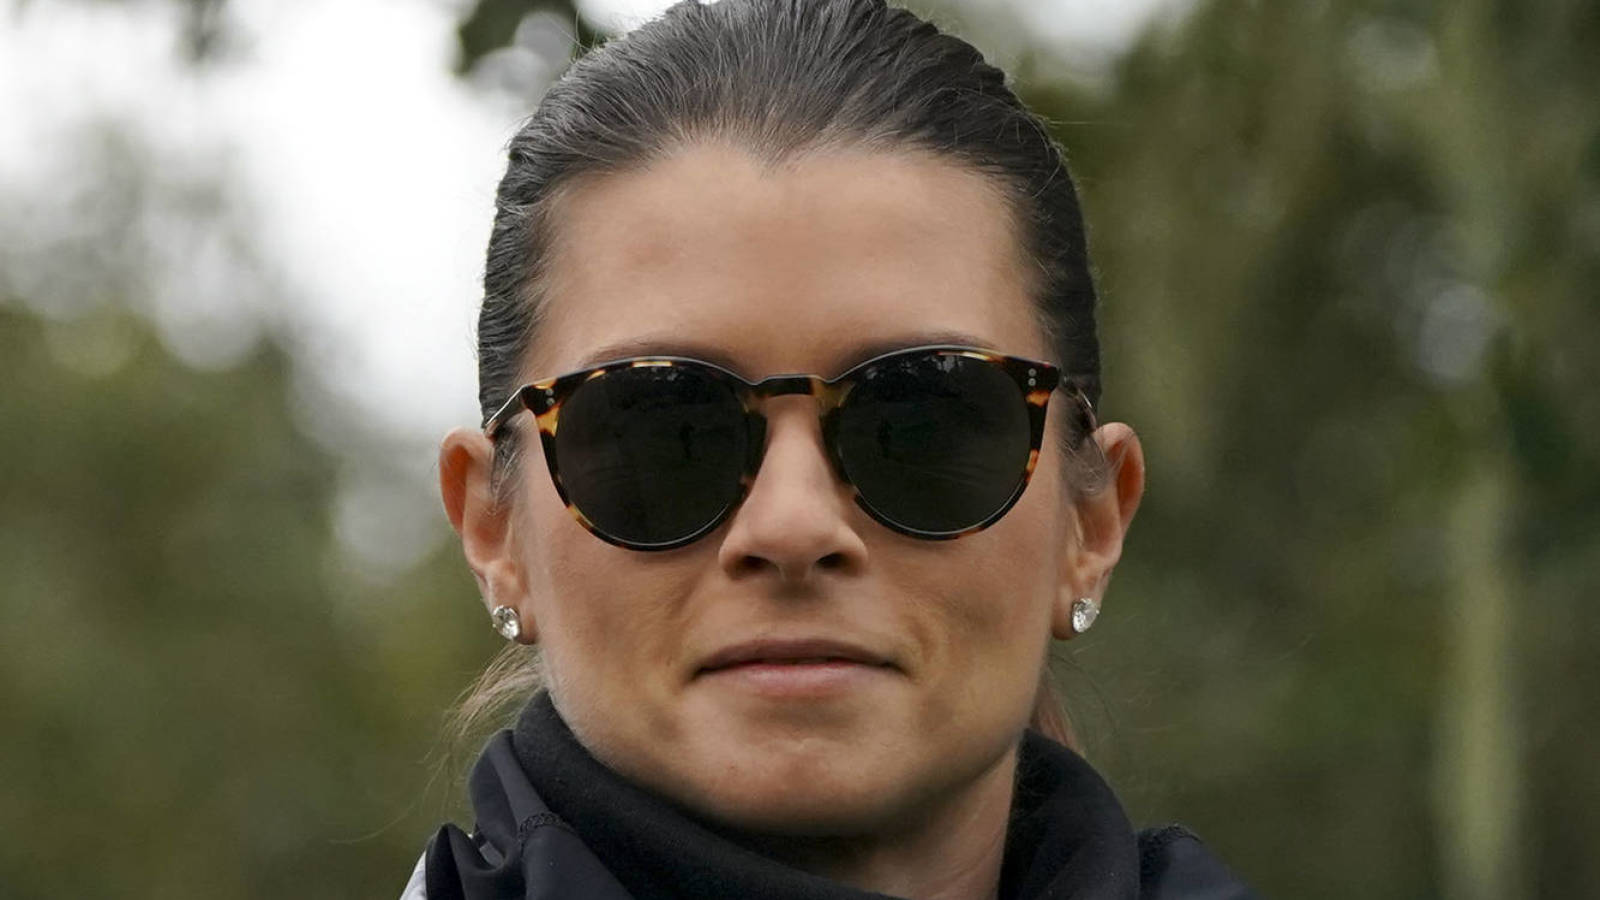 Danica Patrick had surprising first career she wanted to pursue